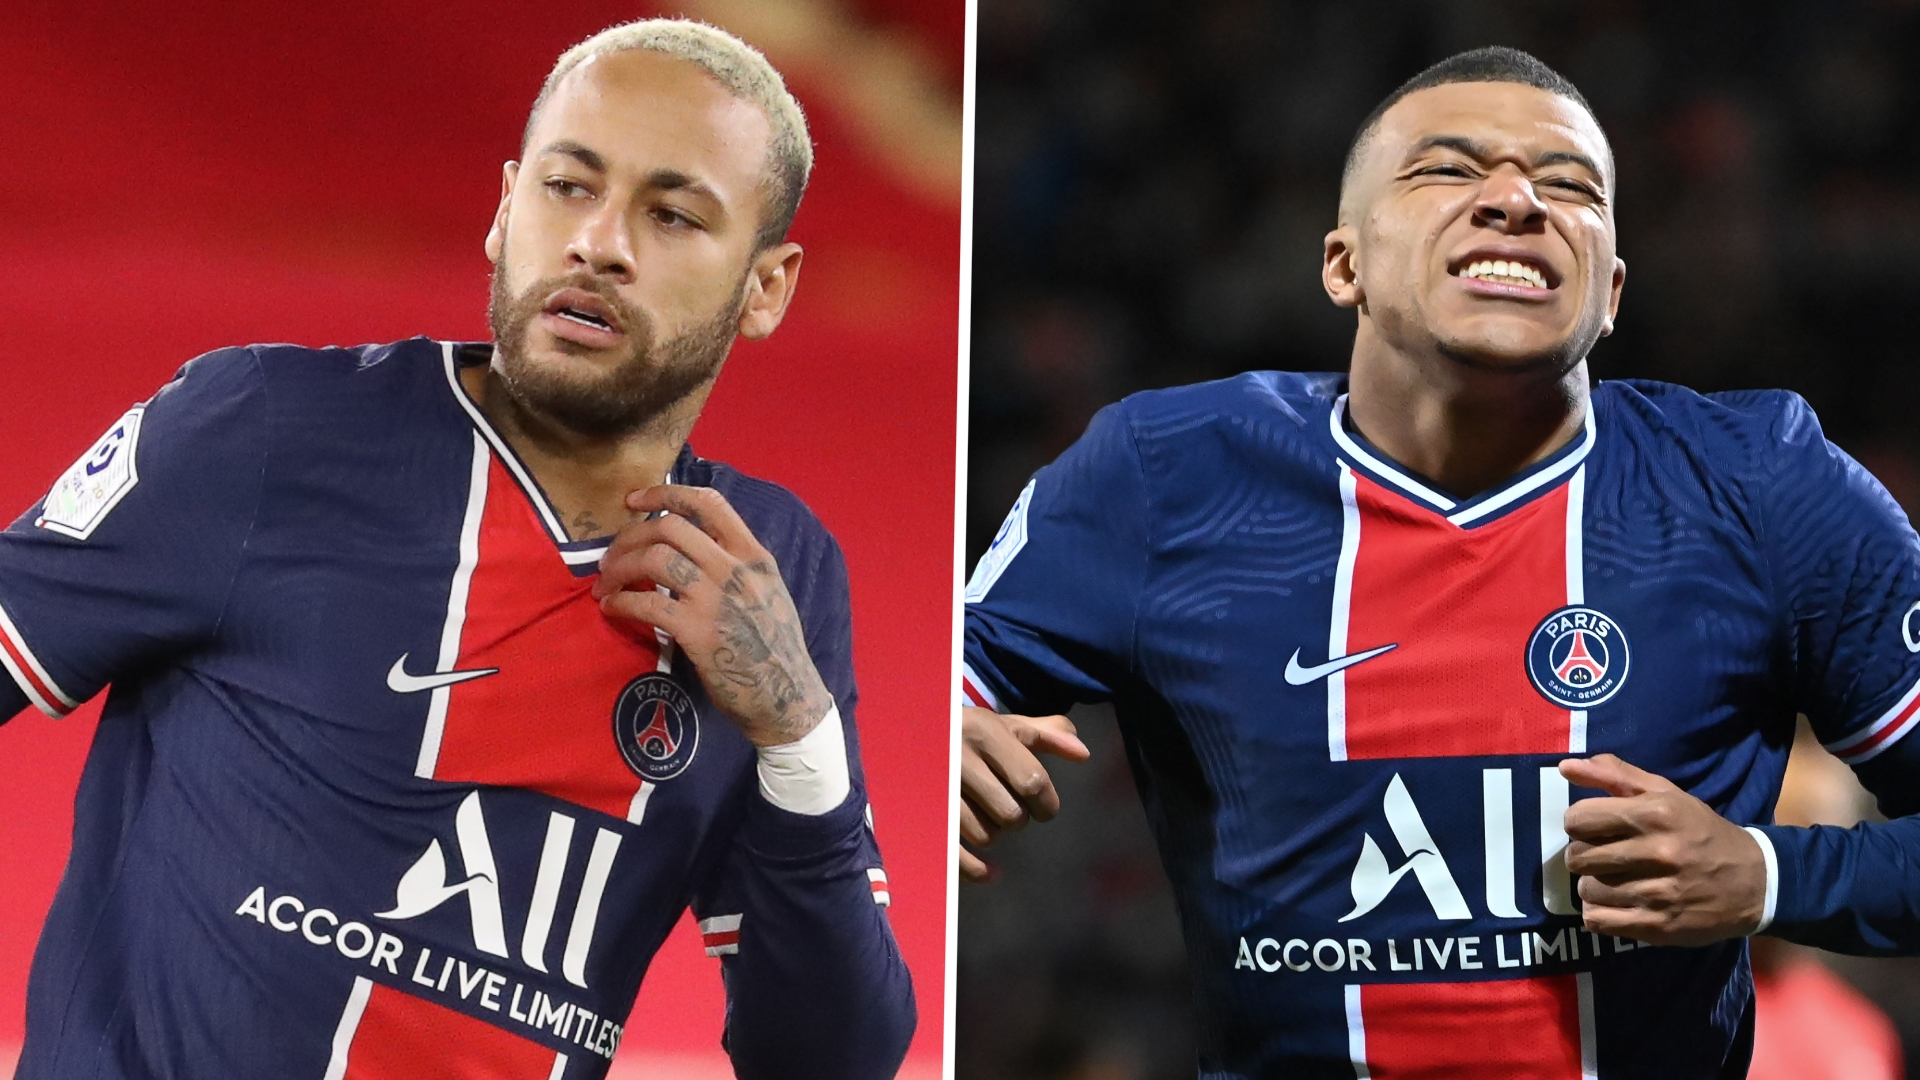 'Mbappe has been Neymarised!' – Petit sees misfiring PSG star trying too hard